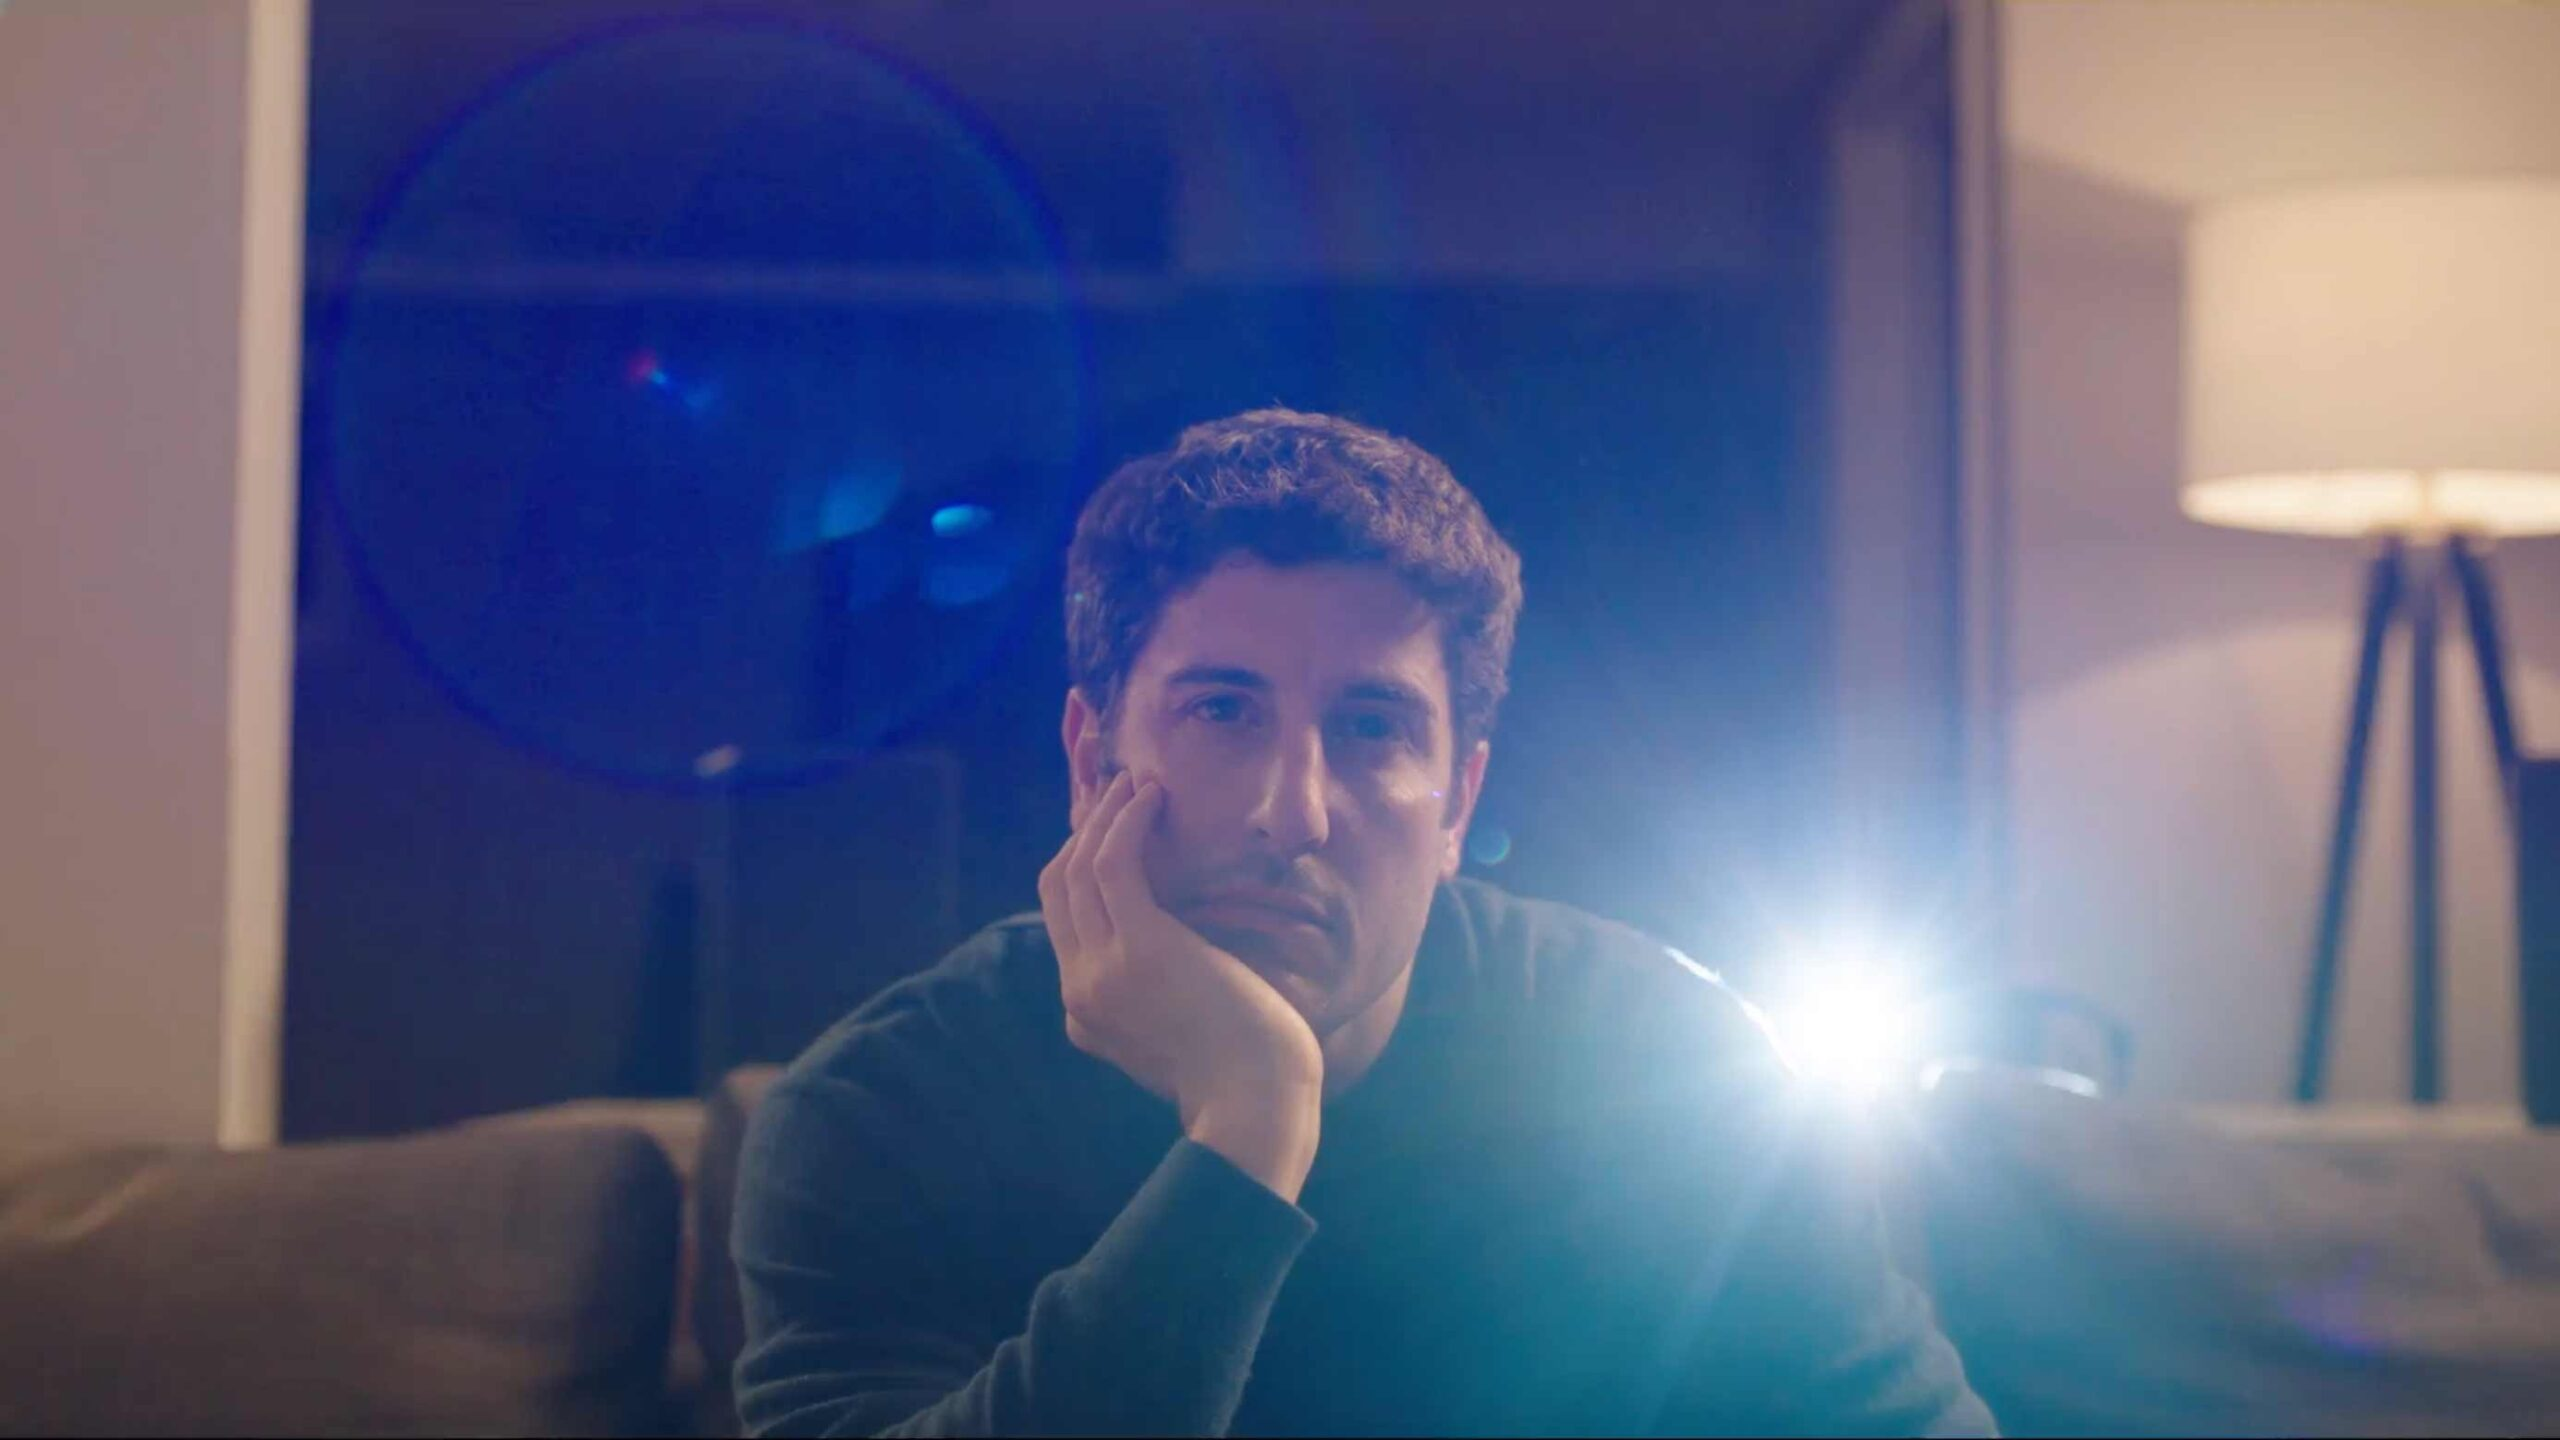 Jason Biggs in The Subject (2020)